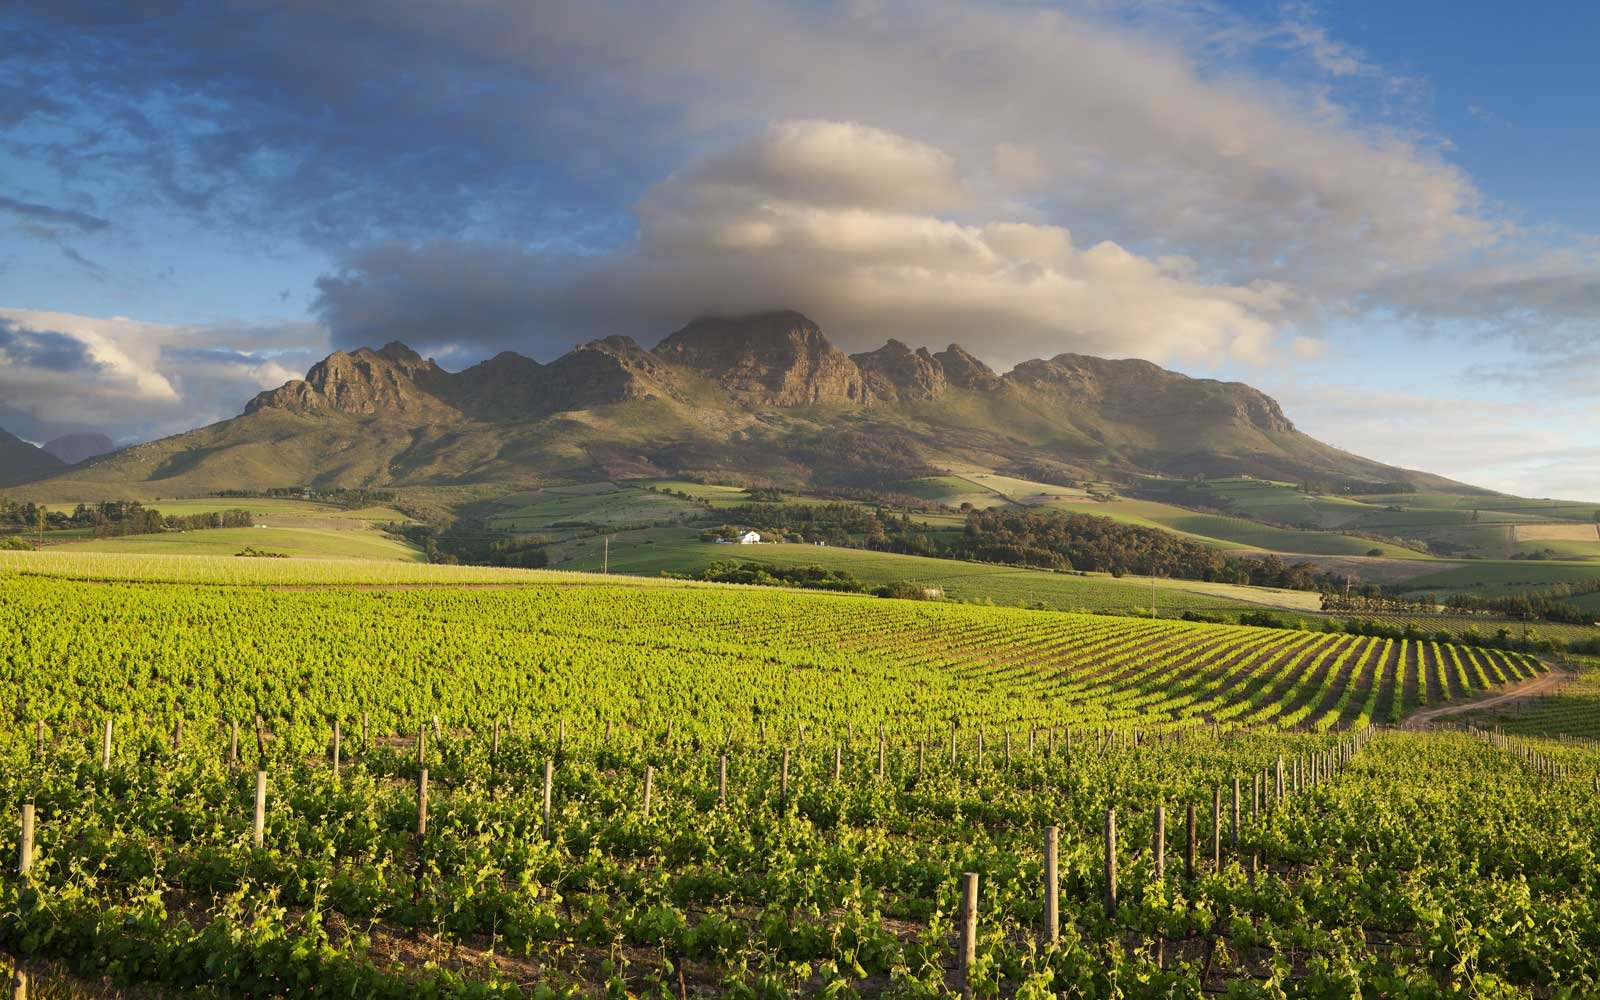 Vineyards in South Africa's Cape Winelands region